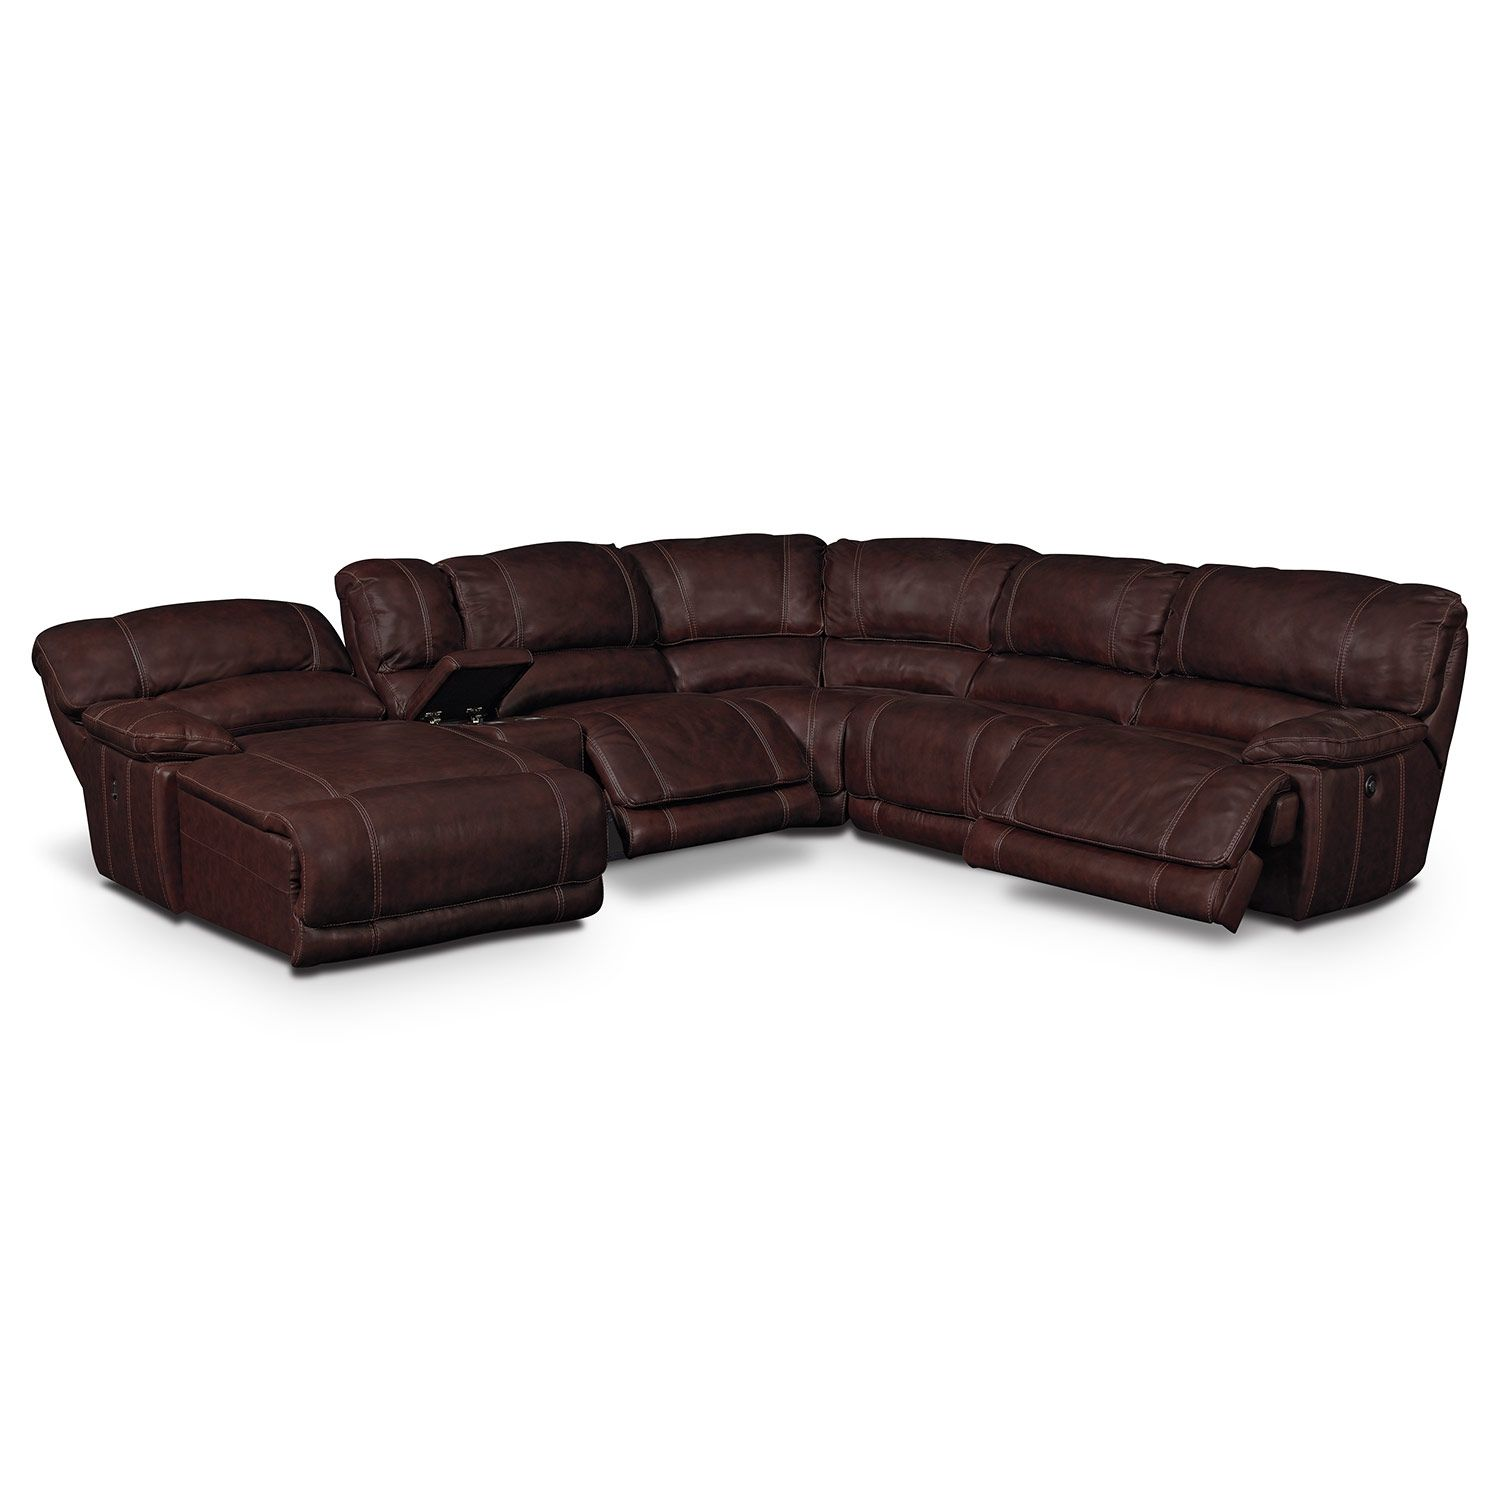 St Malo Iii 6 Pc Power Reclining Sectional Reverse